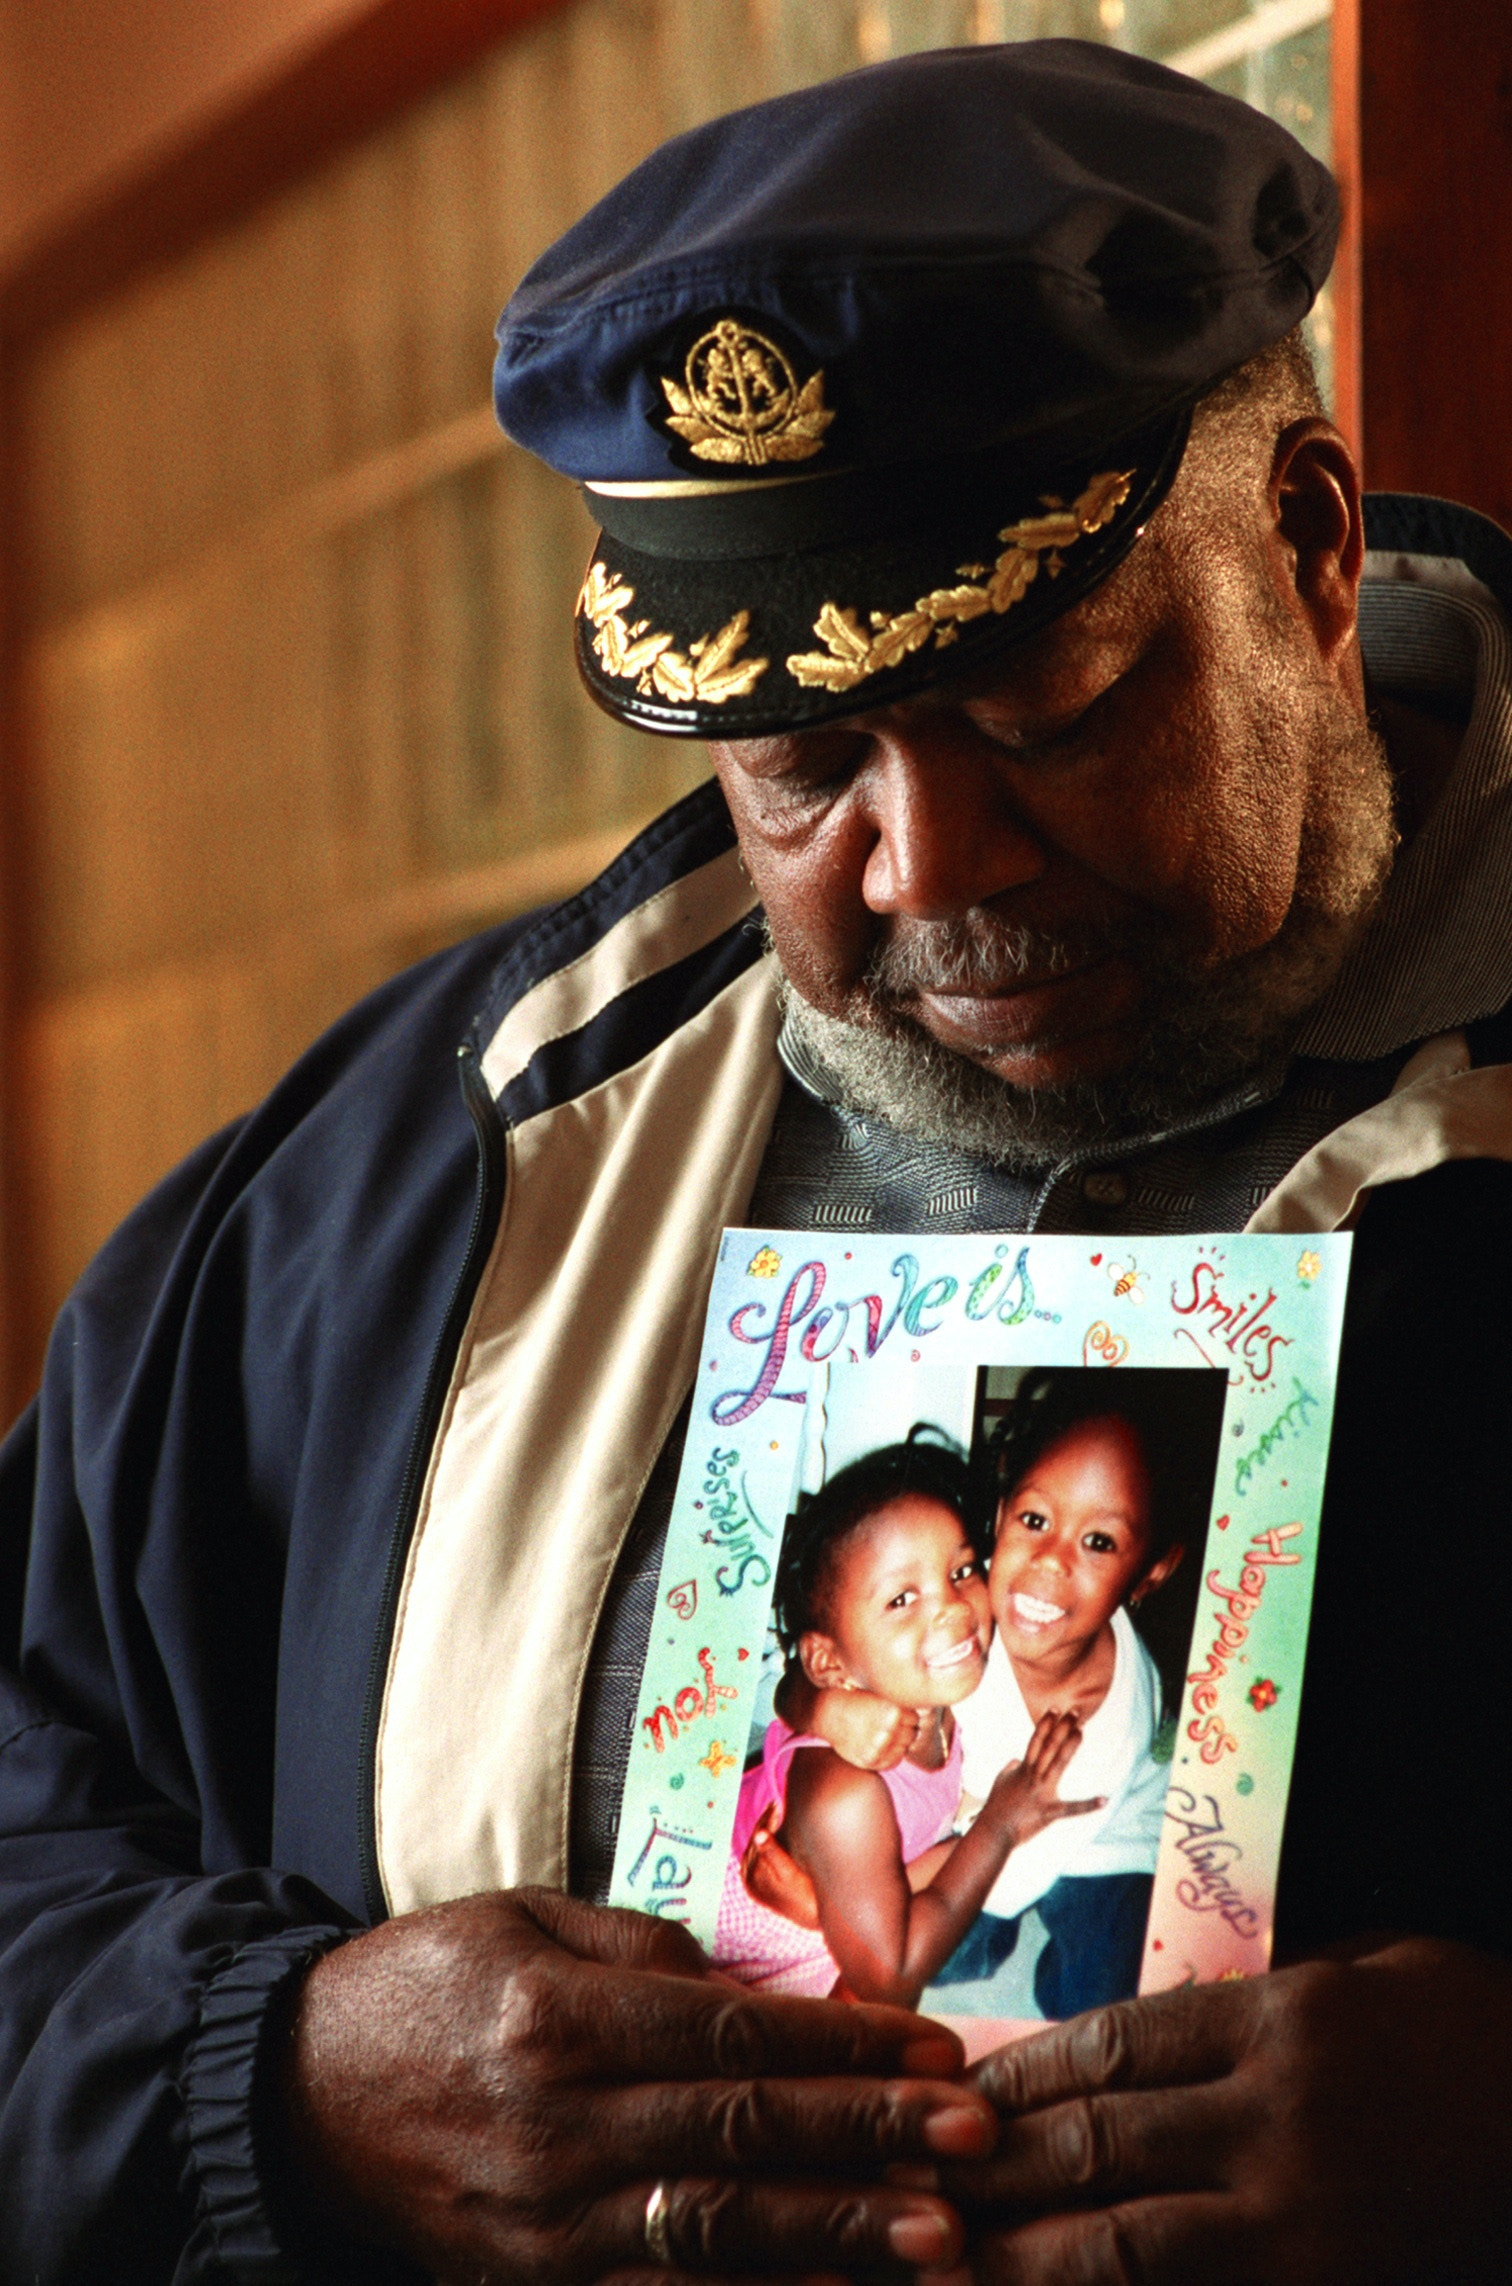 Ibrahim B. Ahmed holds a photo of two of his granddaughters who died in a house fire last November. His daughter, Angela Garcia, was charged with aggravated murder for their deaths. June 6, 2000 (The name is spelled differently in the story : Ibrahim Ahmad) (Lonnie Timmons III/Plain Dealer)